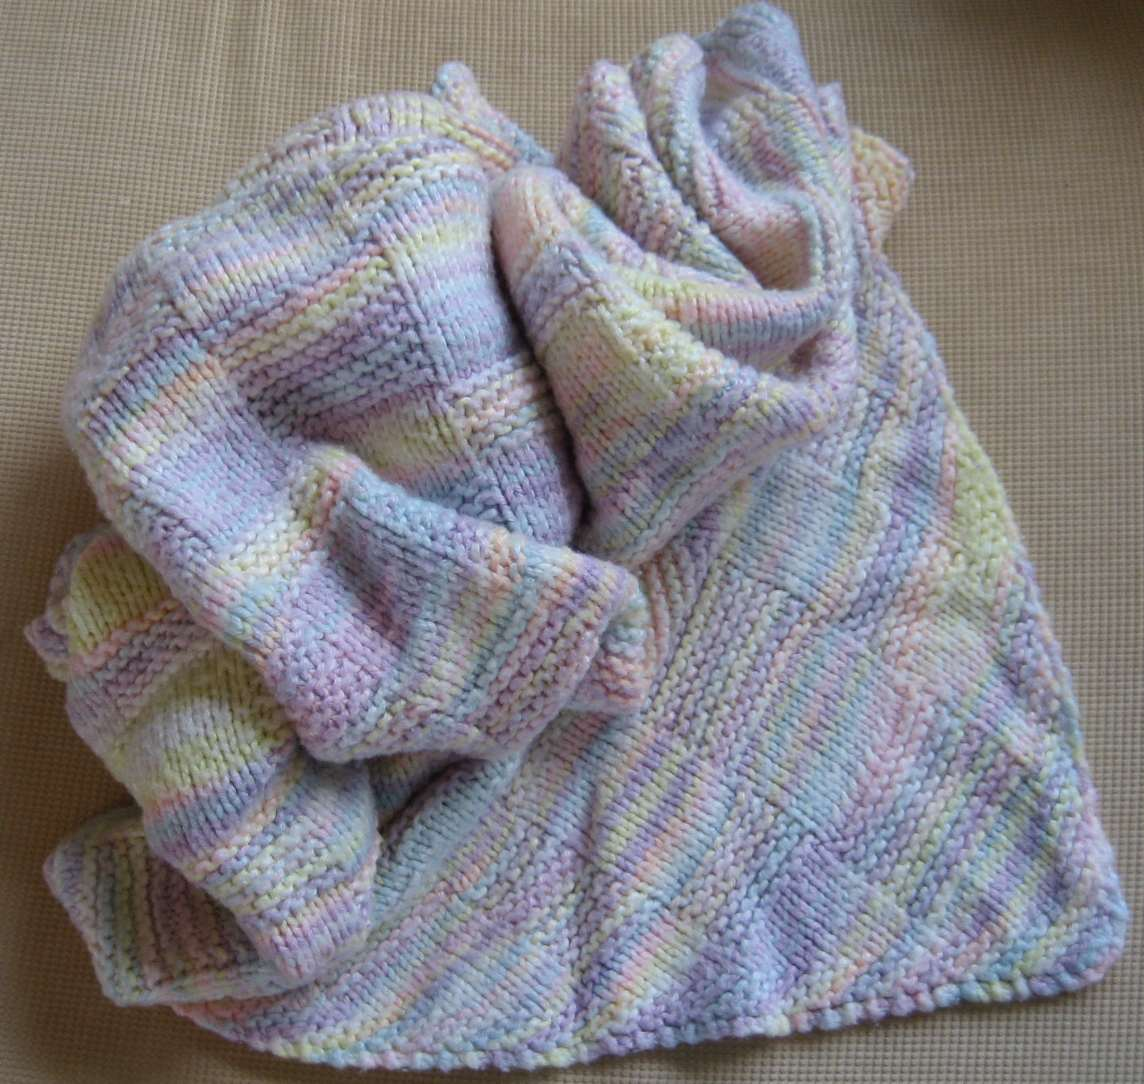 Knitting Pattern Blanket Baby : knit baby blanket-Knitting Gallery